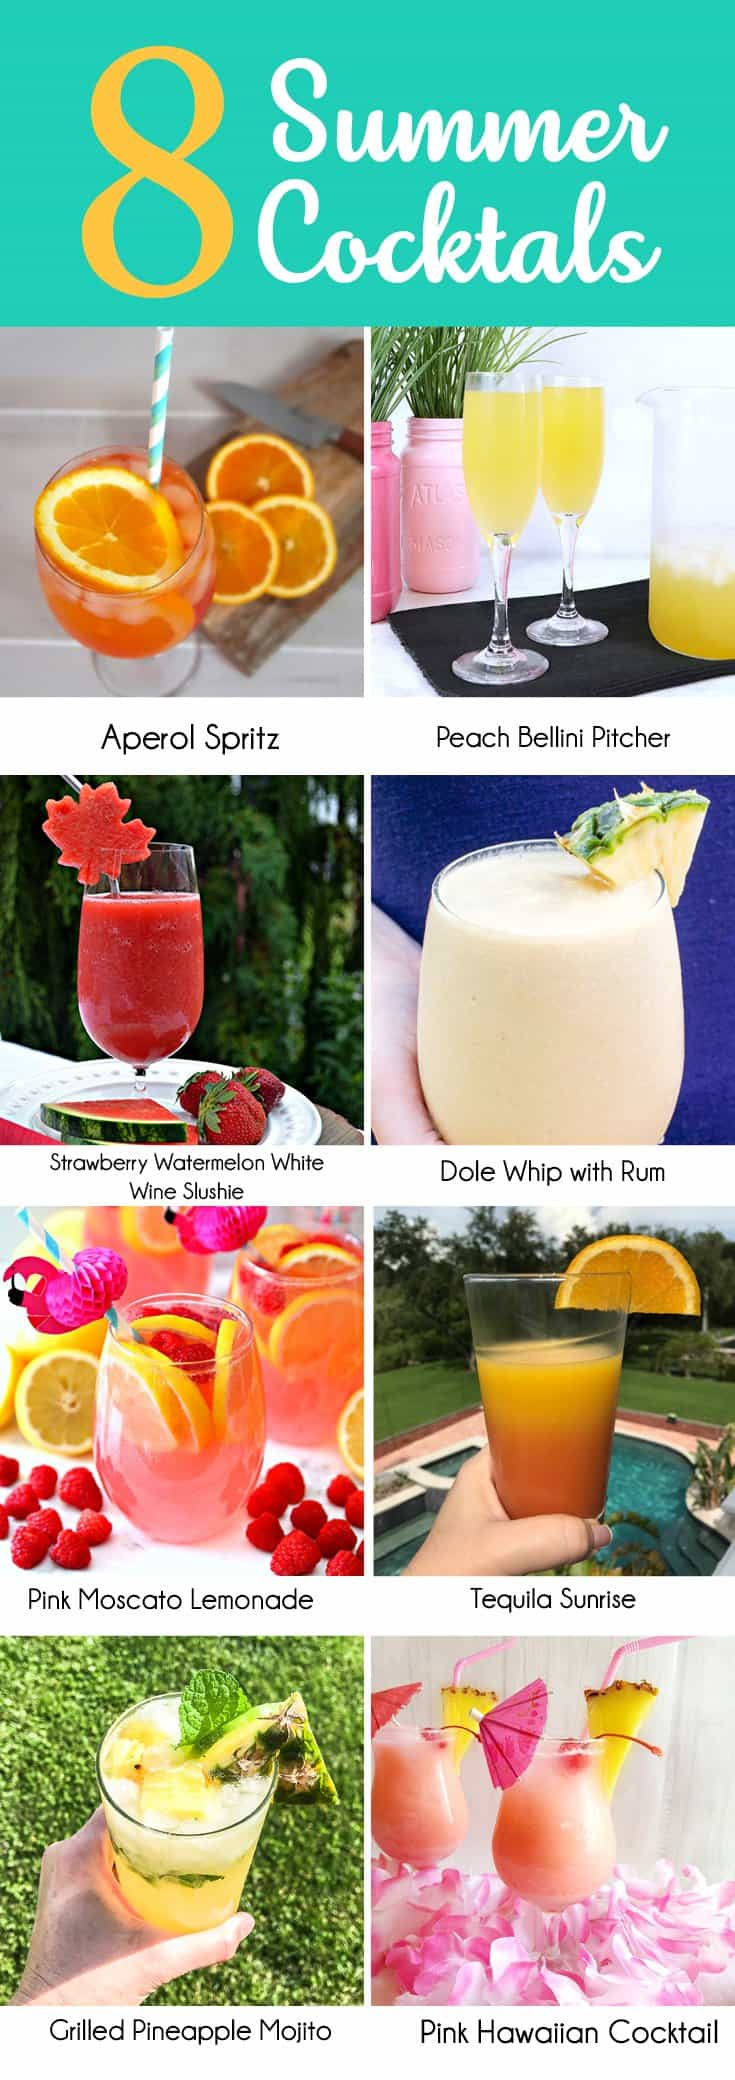 8 Summer Cocktails